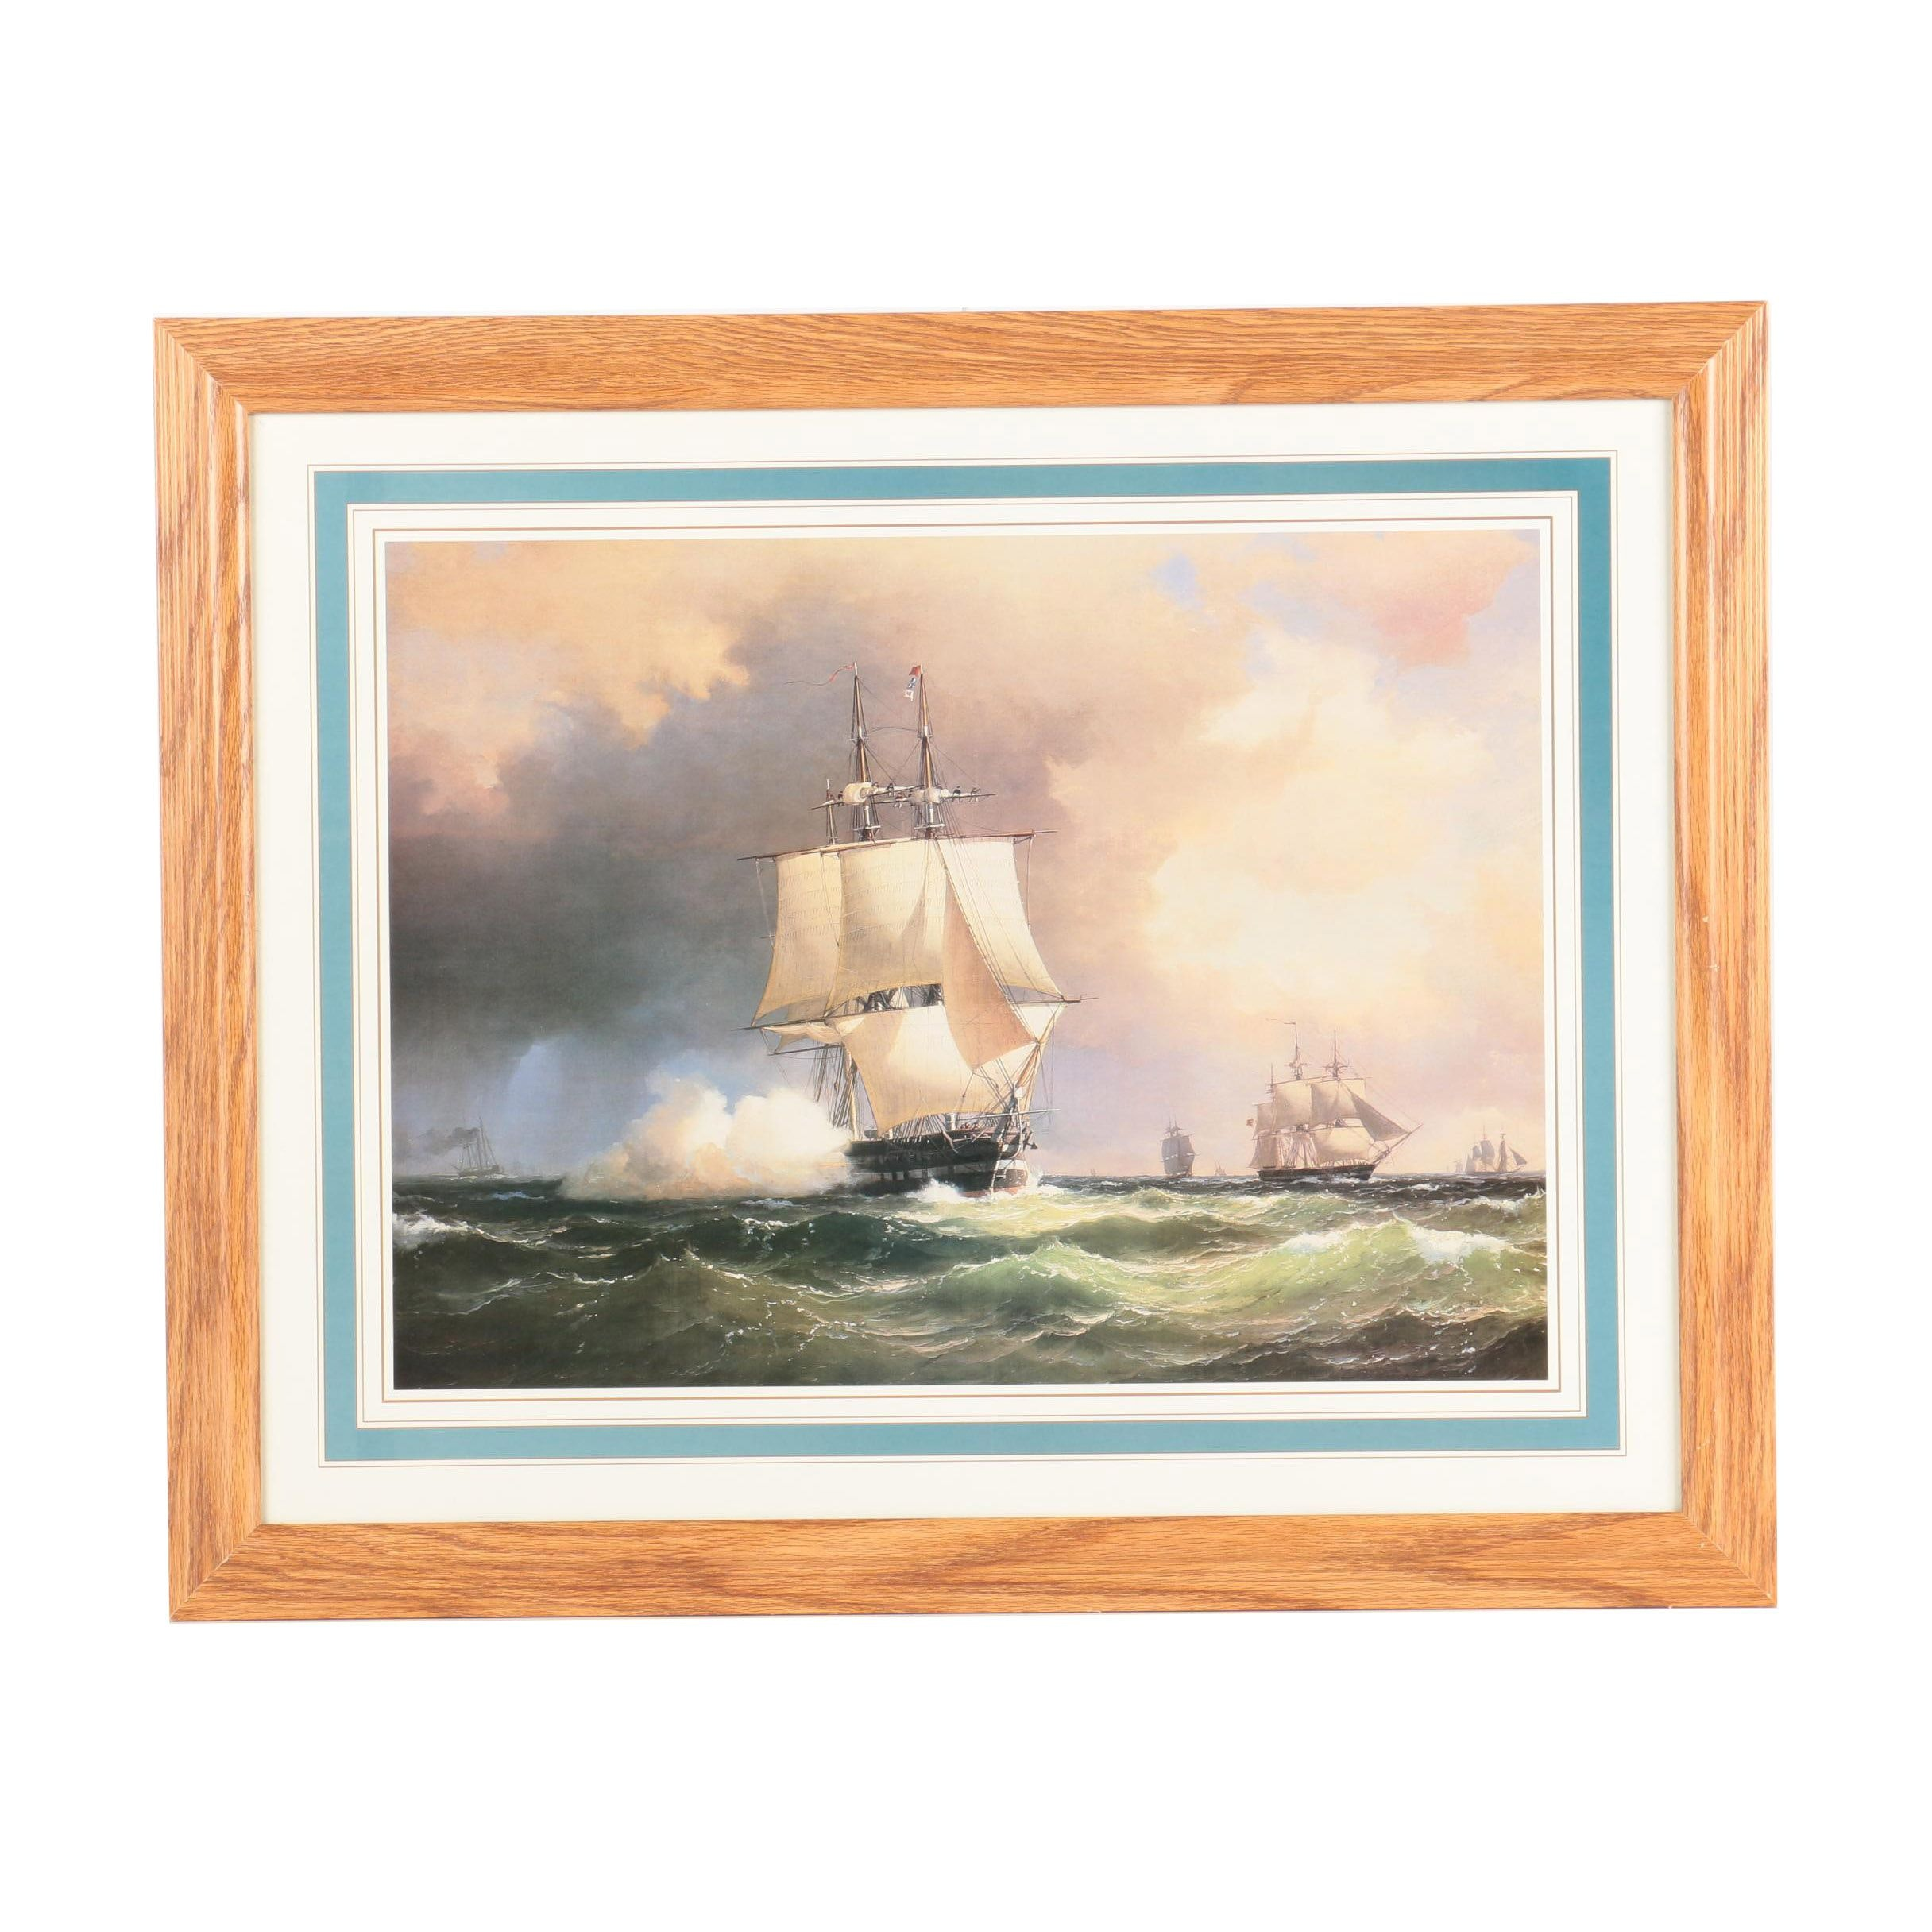 Offset Lithograph Print on Paper After Maritime Landscape of Battle at Sea